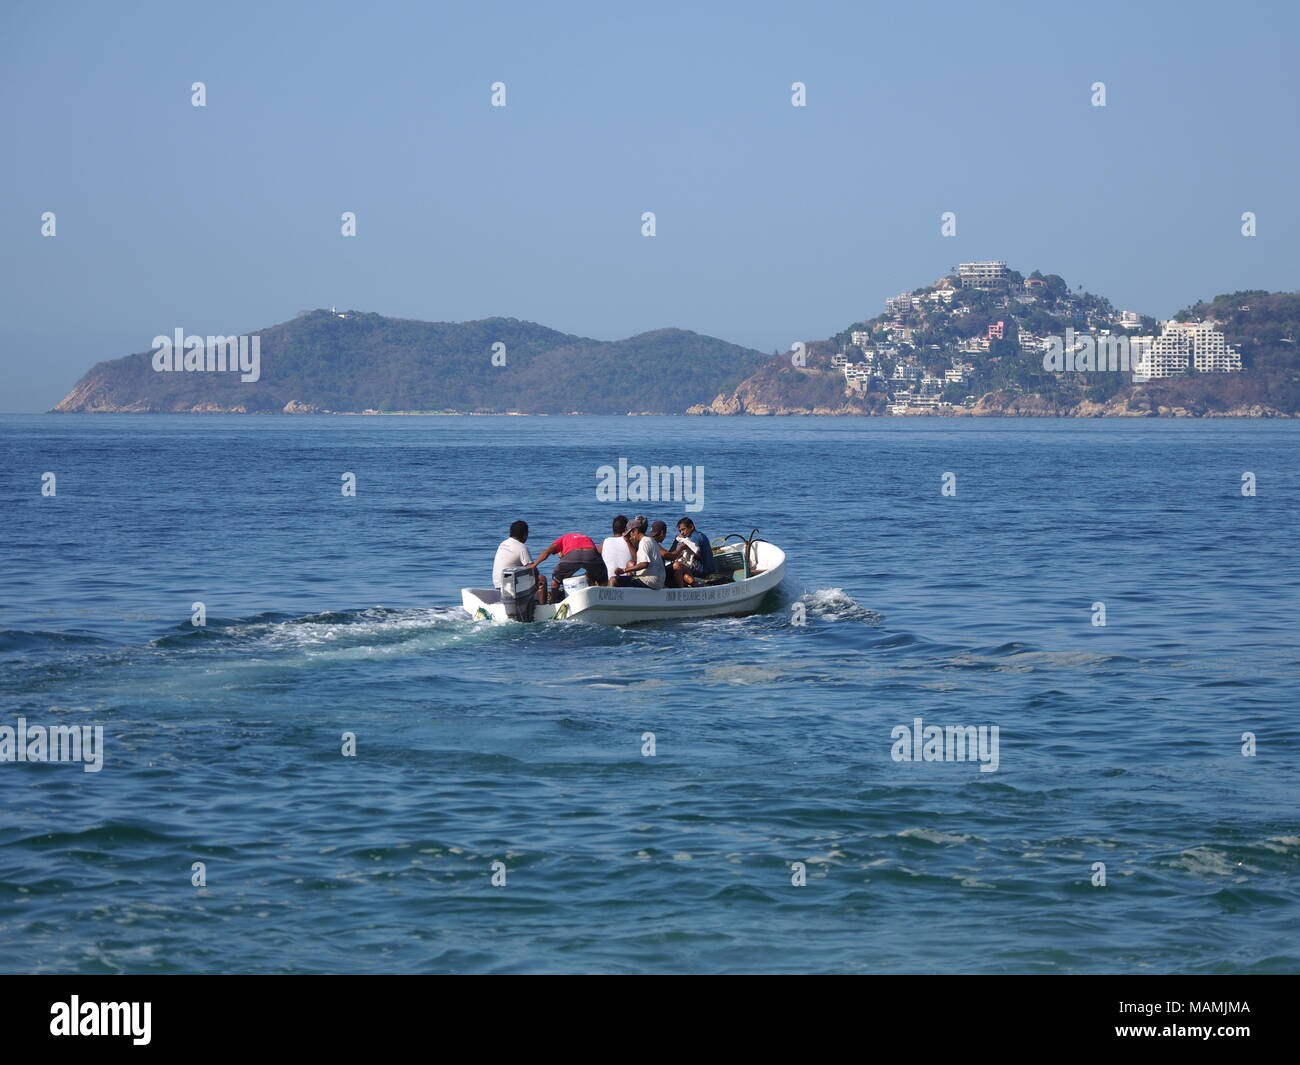 Motor boat used for fishing and tourist excursions of Pacific Ocean in ACAPULCO in MEXICO, bay landscape Stock Photo